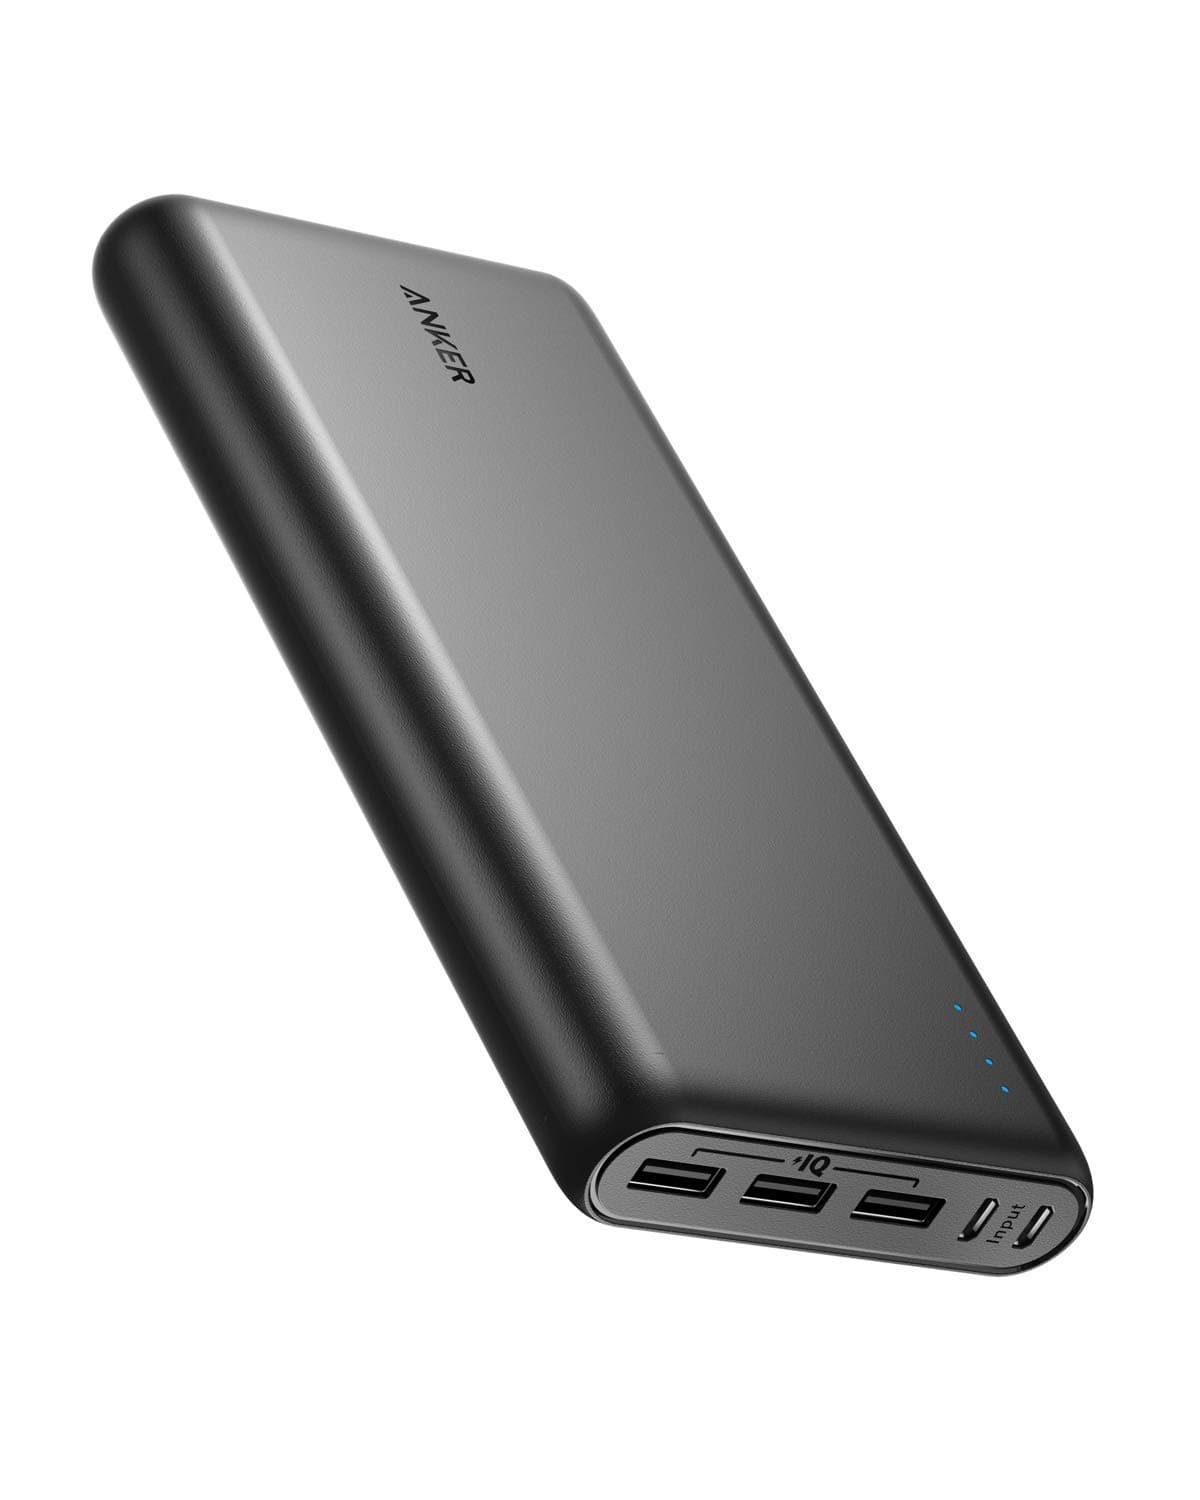 Anker PowerCore 26800 Portable Charger, 26800mAh External Battery with Dual Input Port and Double-Speed Recharging, 3 USB Ports 36% OFF $42.5